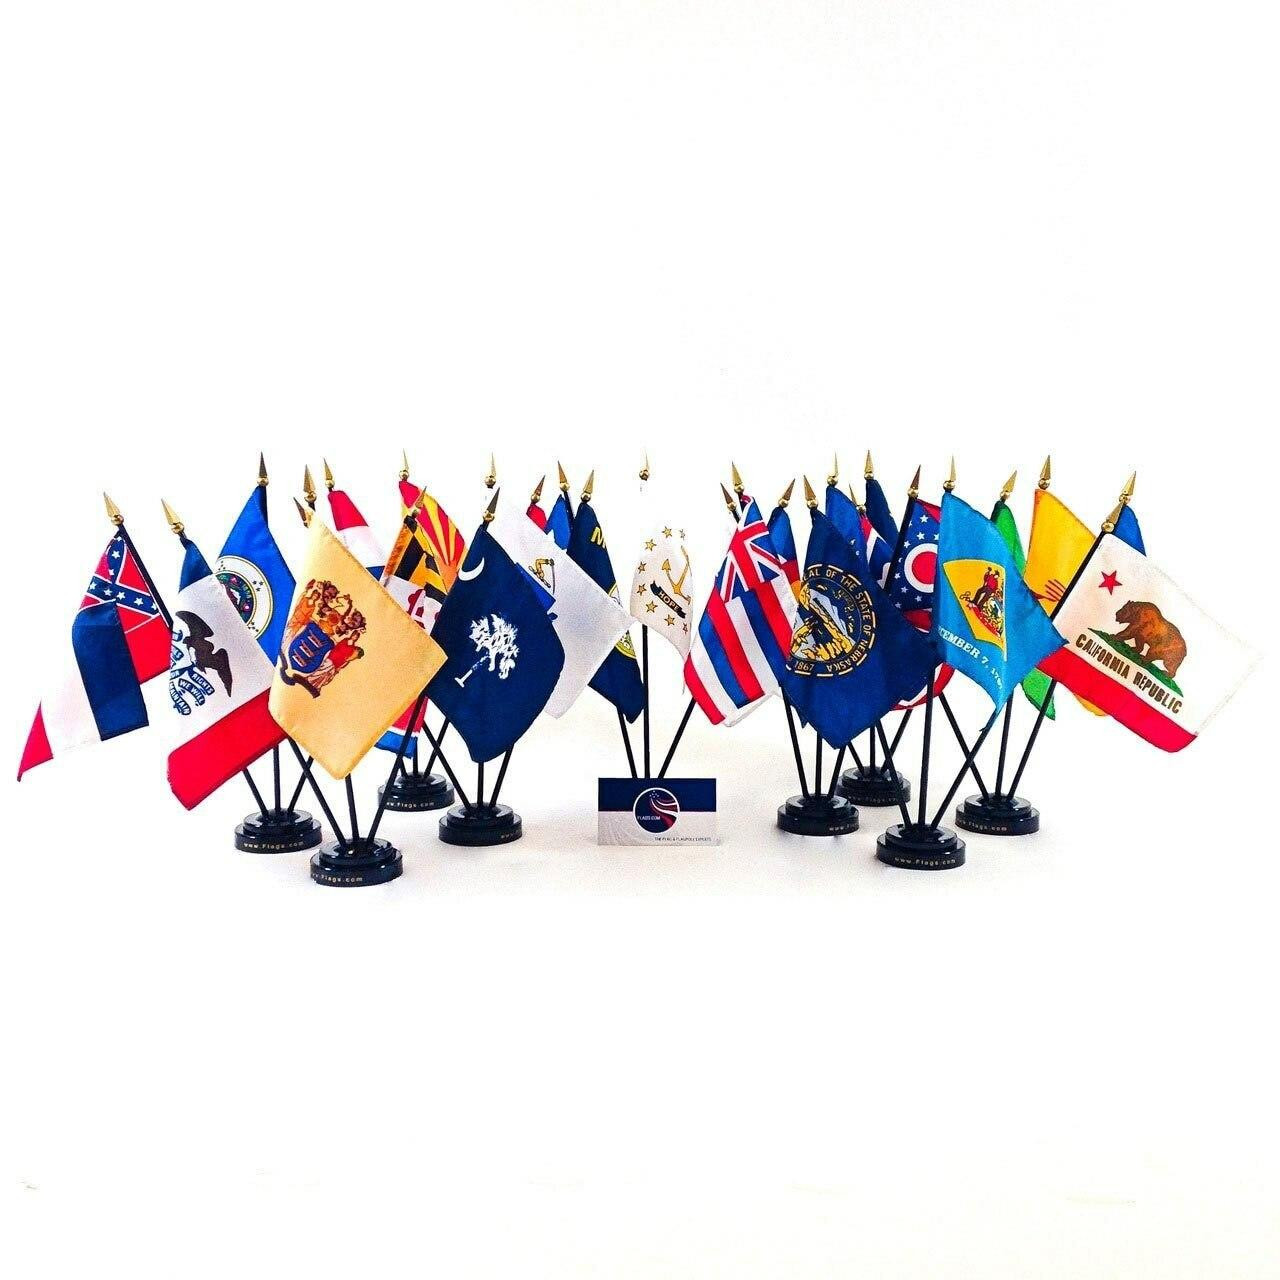 Different state stick flags are featured including in sets of 3 on Flags.com black plastic base. States featured include: California, Nebraska, New Mexico, Delaware, Iowa, South Carolina, Maryland, Hawaii, Ohio, Rhode Island, Montana, etc. Flags.com business card is centered in the middle of flag display. All flags have black plastic staffs and gold spears.